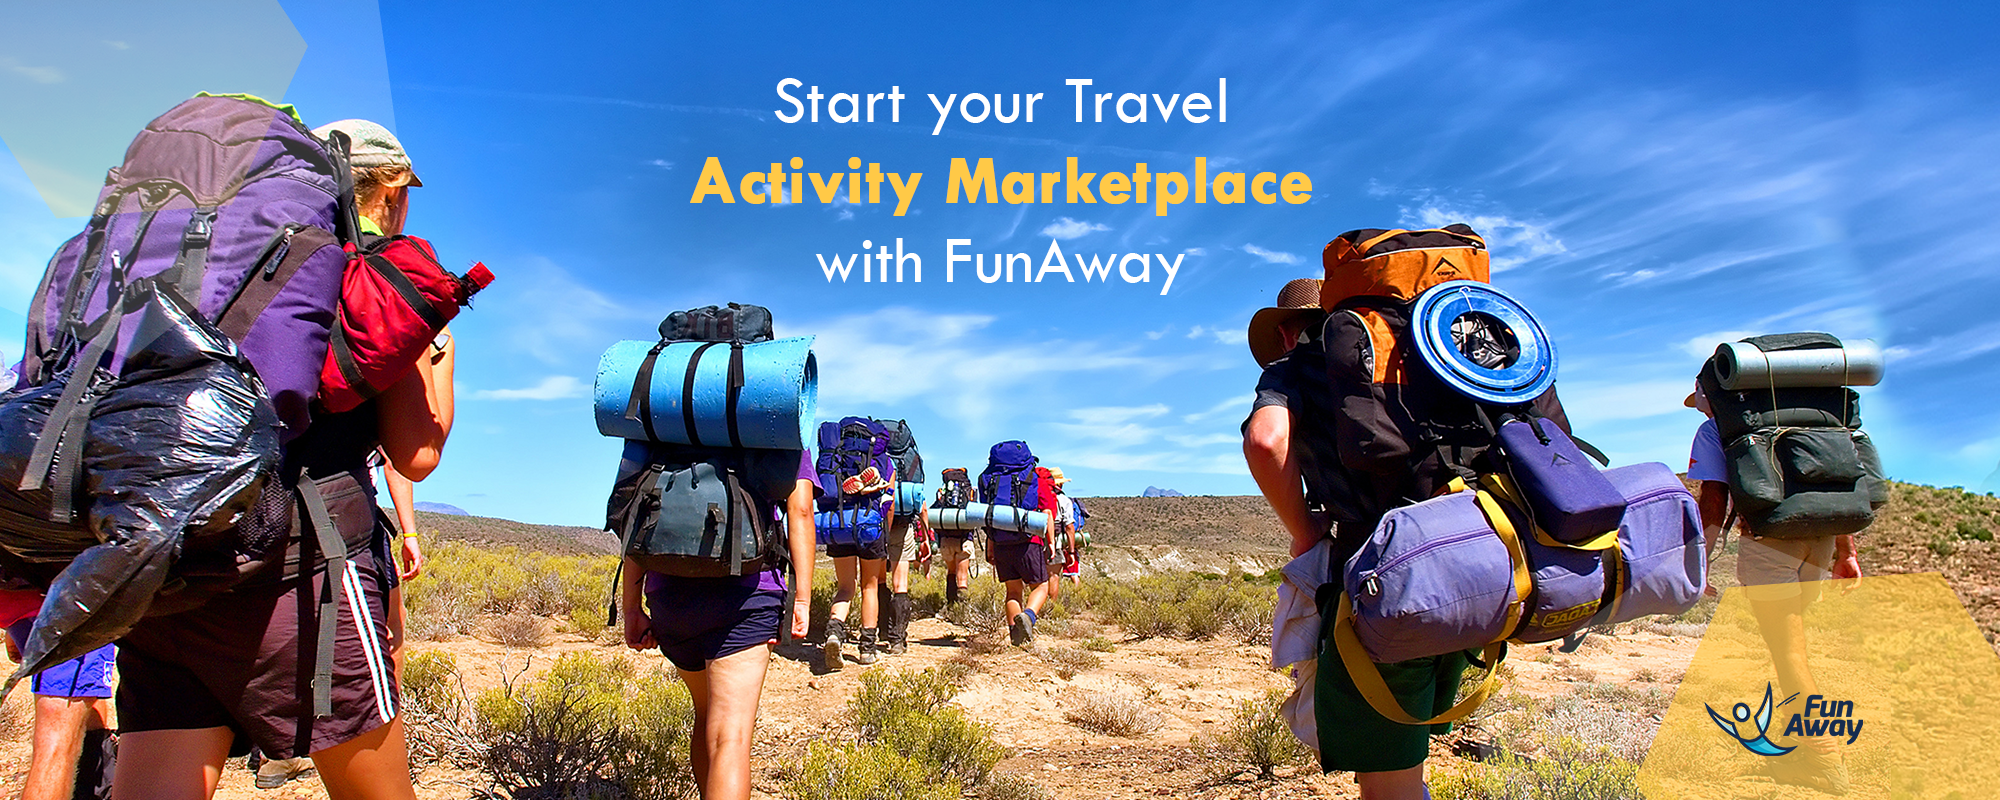 FunAway (travel activity marketplace builder) gets acclaimed as Rising Star of 2018 by Finance Online